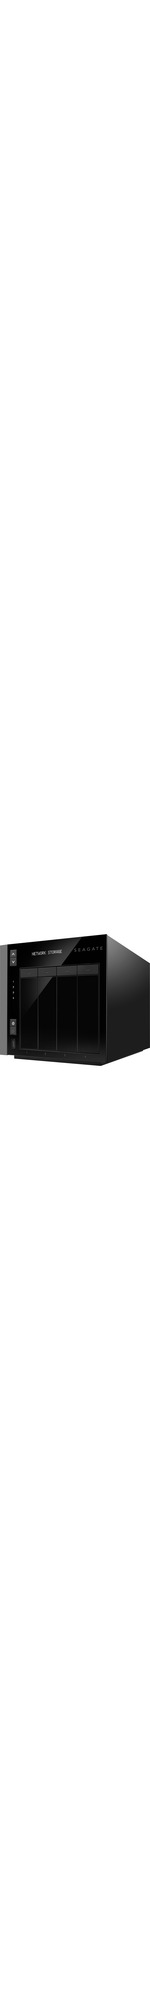 Seagate STED200 4 x Total Bays NAS Server - Desktop - Gigabit Ethernet - 3 USB Ports - Network RJ-45